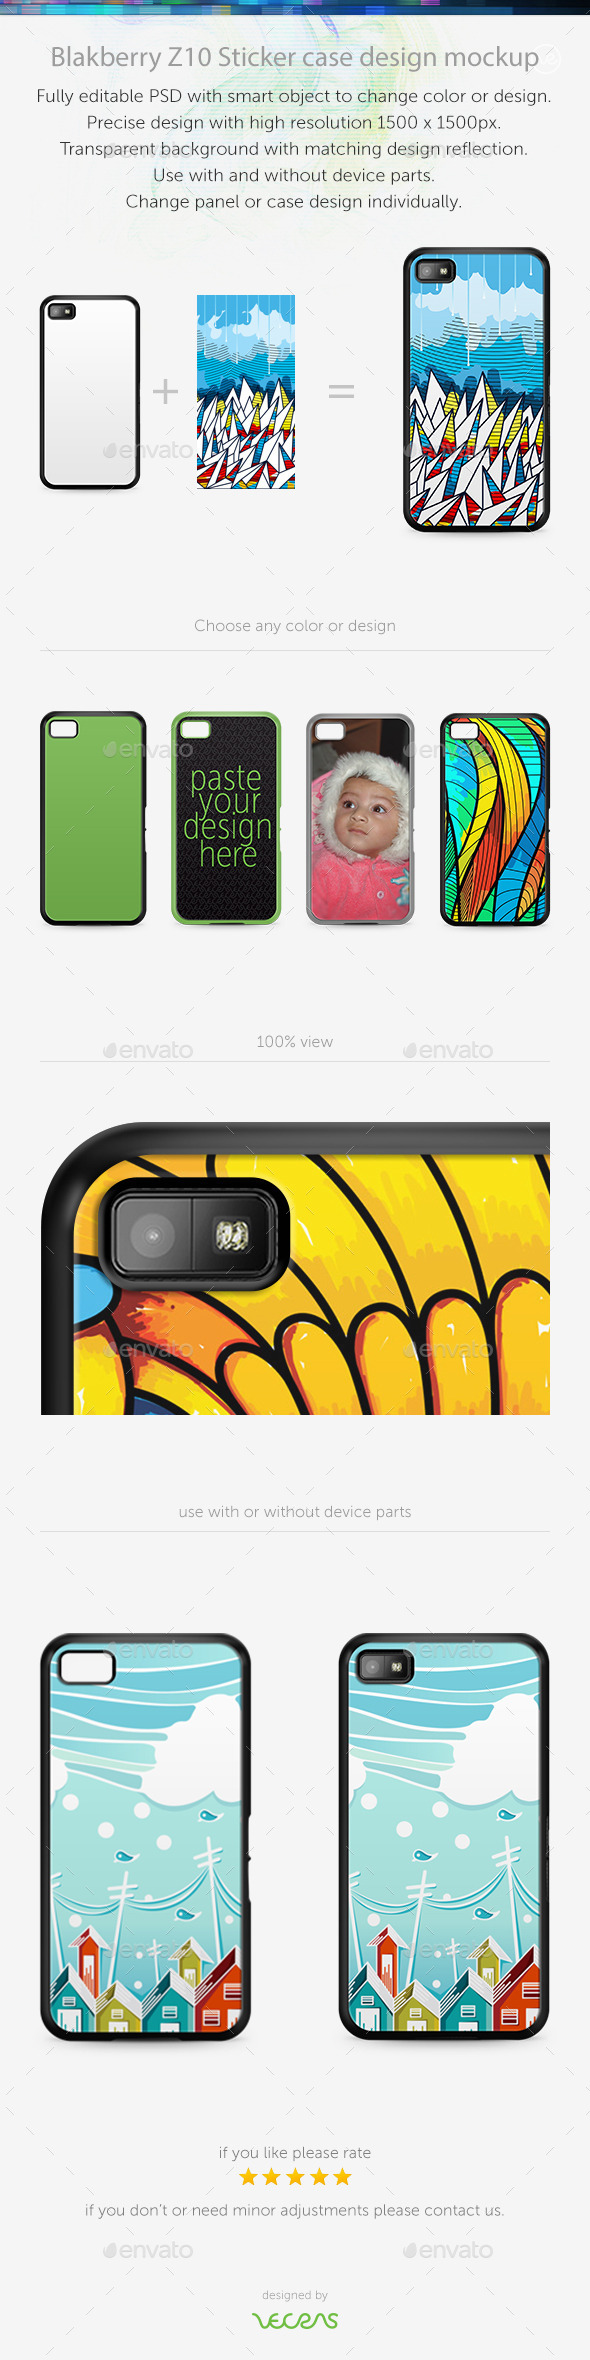 Blakberry Z10 Sticker Case Design Mockup - Mobile Displays